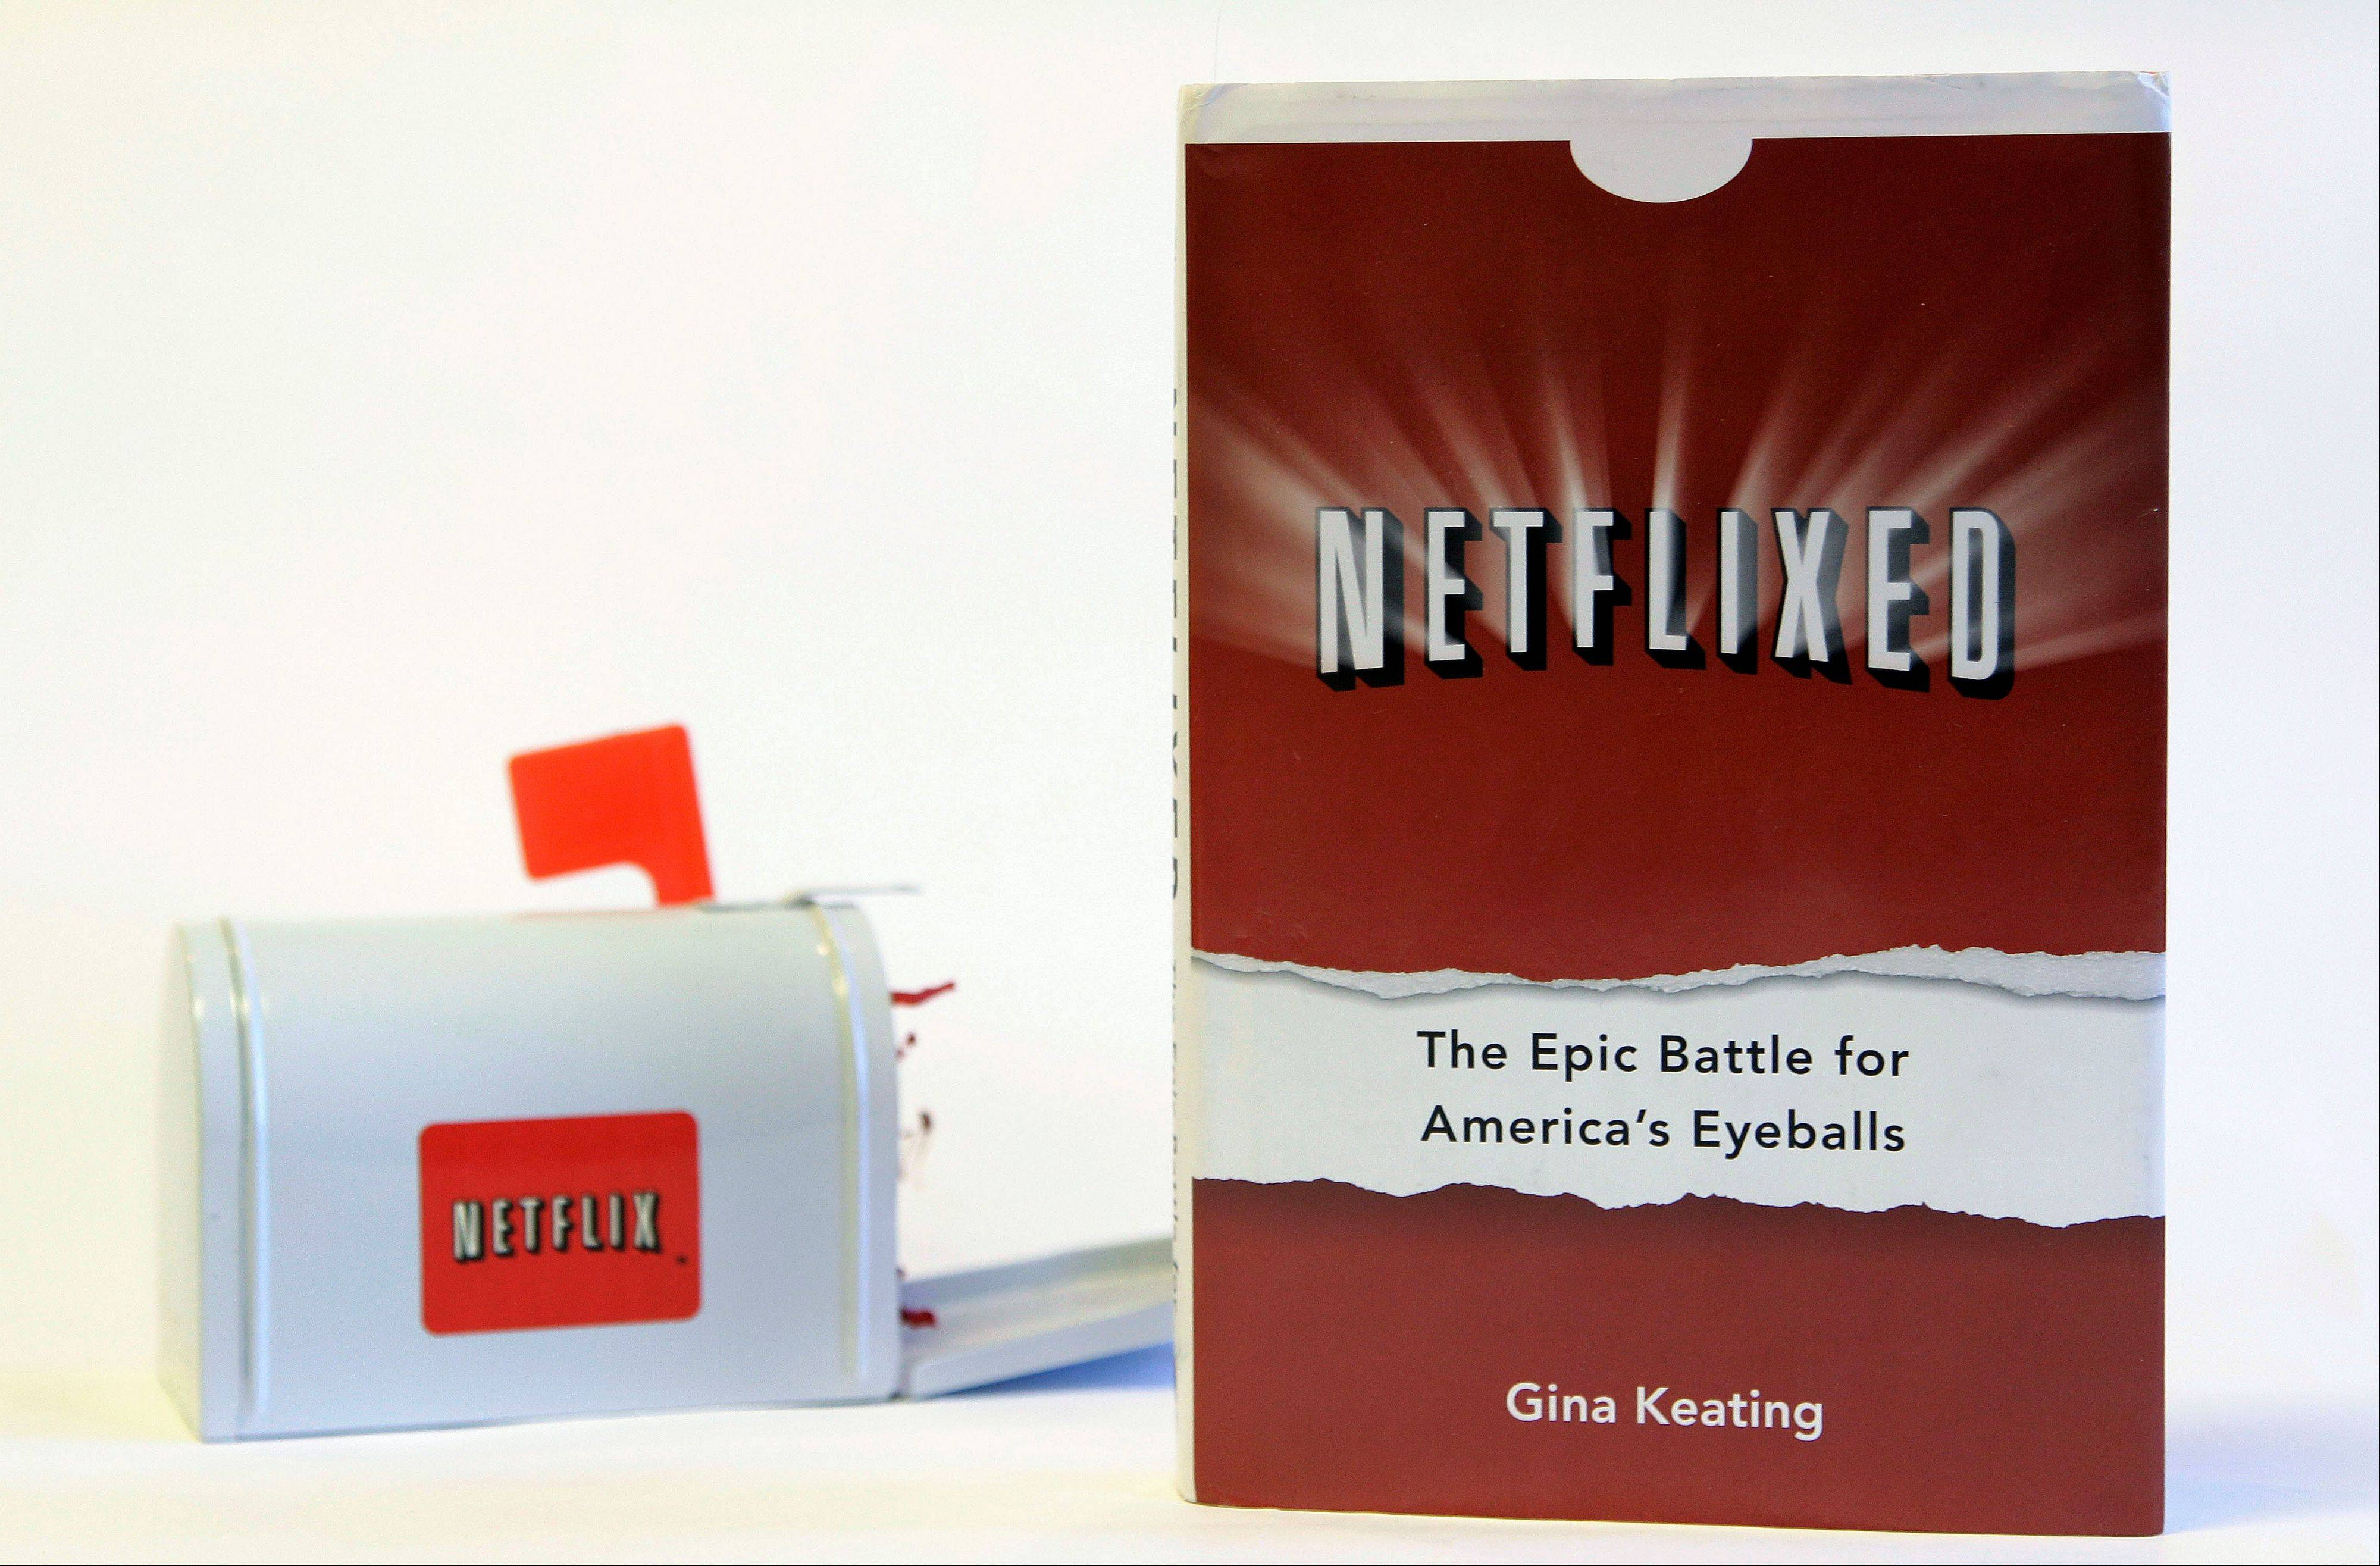 Gina Keating�s book �Netflixed: The Epic Battle for America�s Eyeballs,� which went on sale Thursday, tries to debunk a widely told tale about the company�s origins and paints a polarizing portrait of its star CEO Reed Hastings.